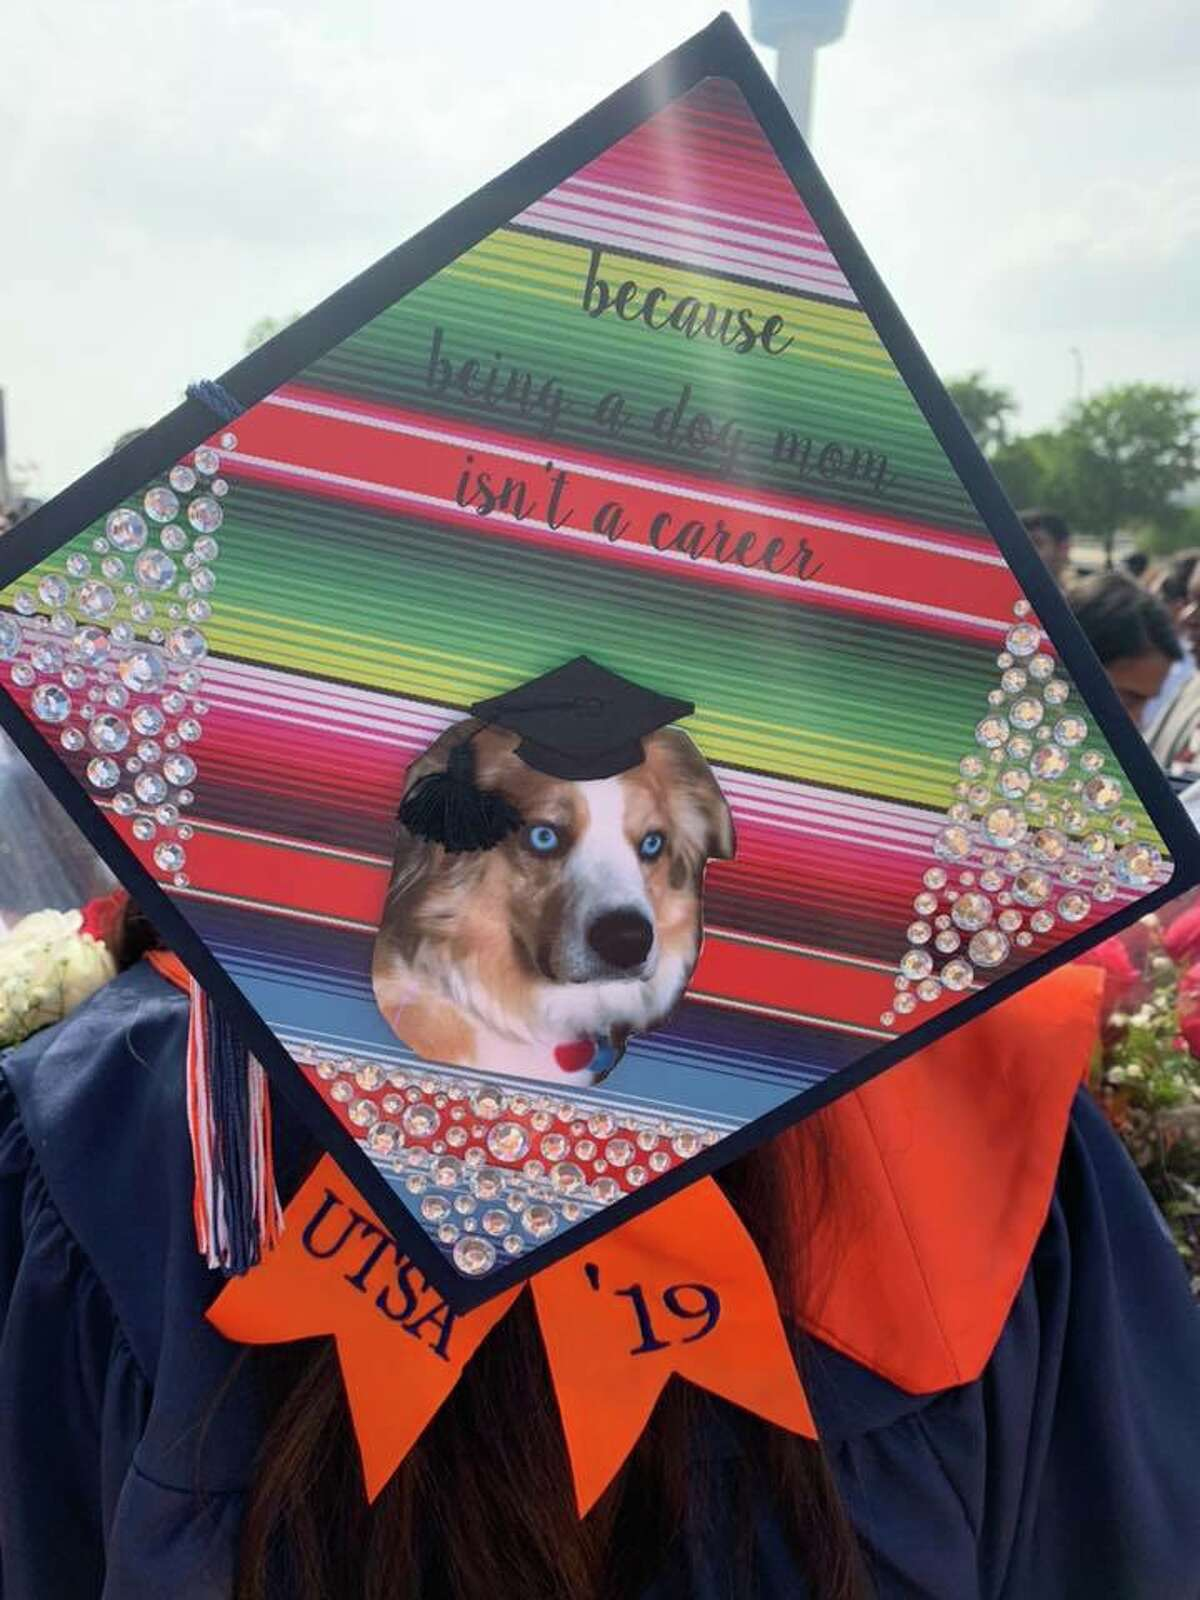 Graduation cap picture submitted by Florence Braendle Stone on Wednesday, May 22, 2019.